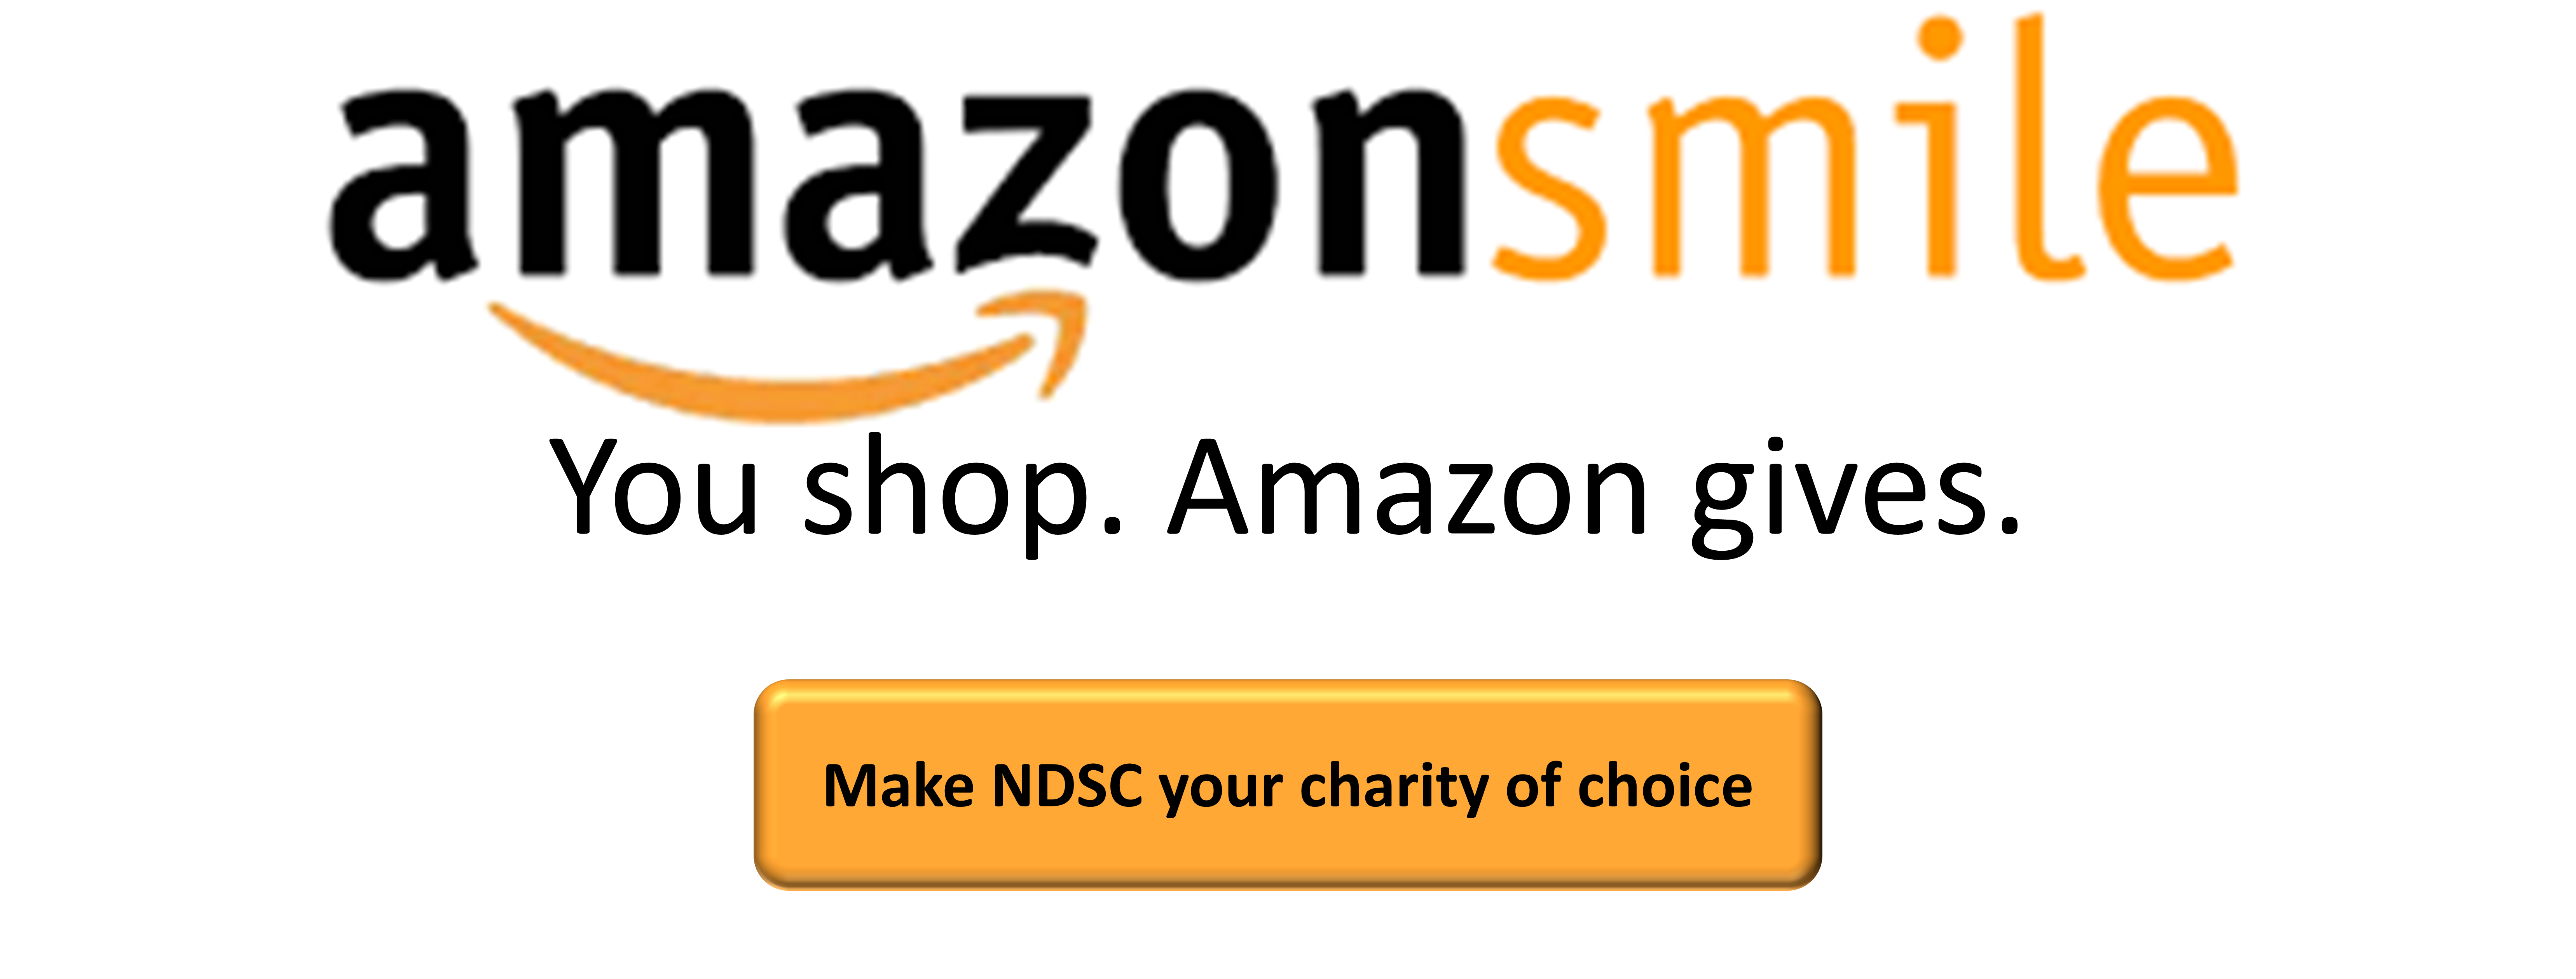 Amazon Smile and NDSC